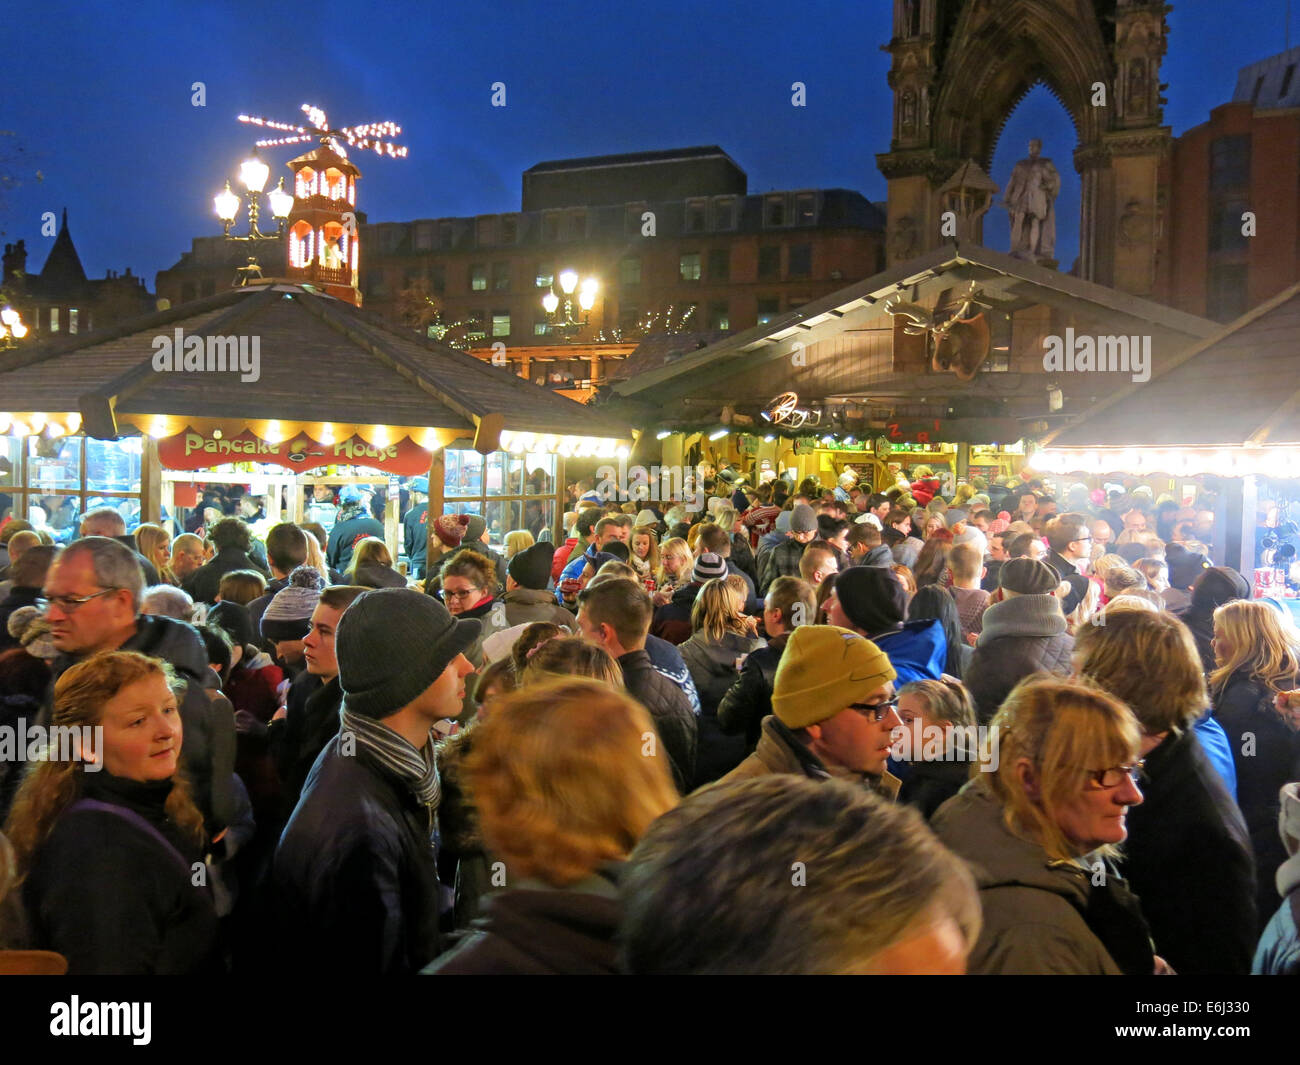 night,sq,market,town,hall,santa,on,clock,NW,north,west,evening,crowd,crowds,shopping,food,drink,German,Markets,in,Albert,Square,December,at,dusk,happy,enjoying,themselves,festive,trip,into,the,city,town,fun,happy,German,Markets,in,Albert,Square,December,at,dusk,Lancs,Lancashire,tour,tourist,Gotonysmith,tourism,trip,buy,buying,presents,wurst,sausages,cooking,cooked,food,all,ages